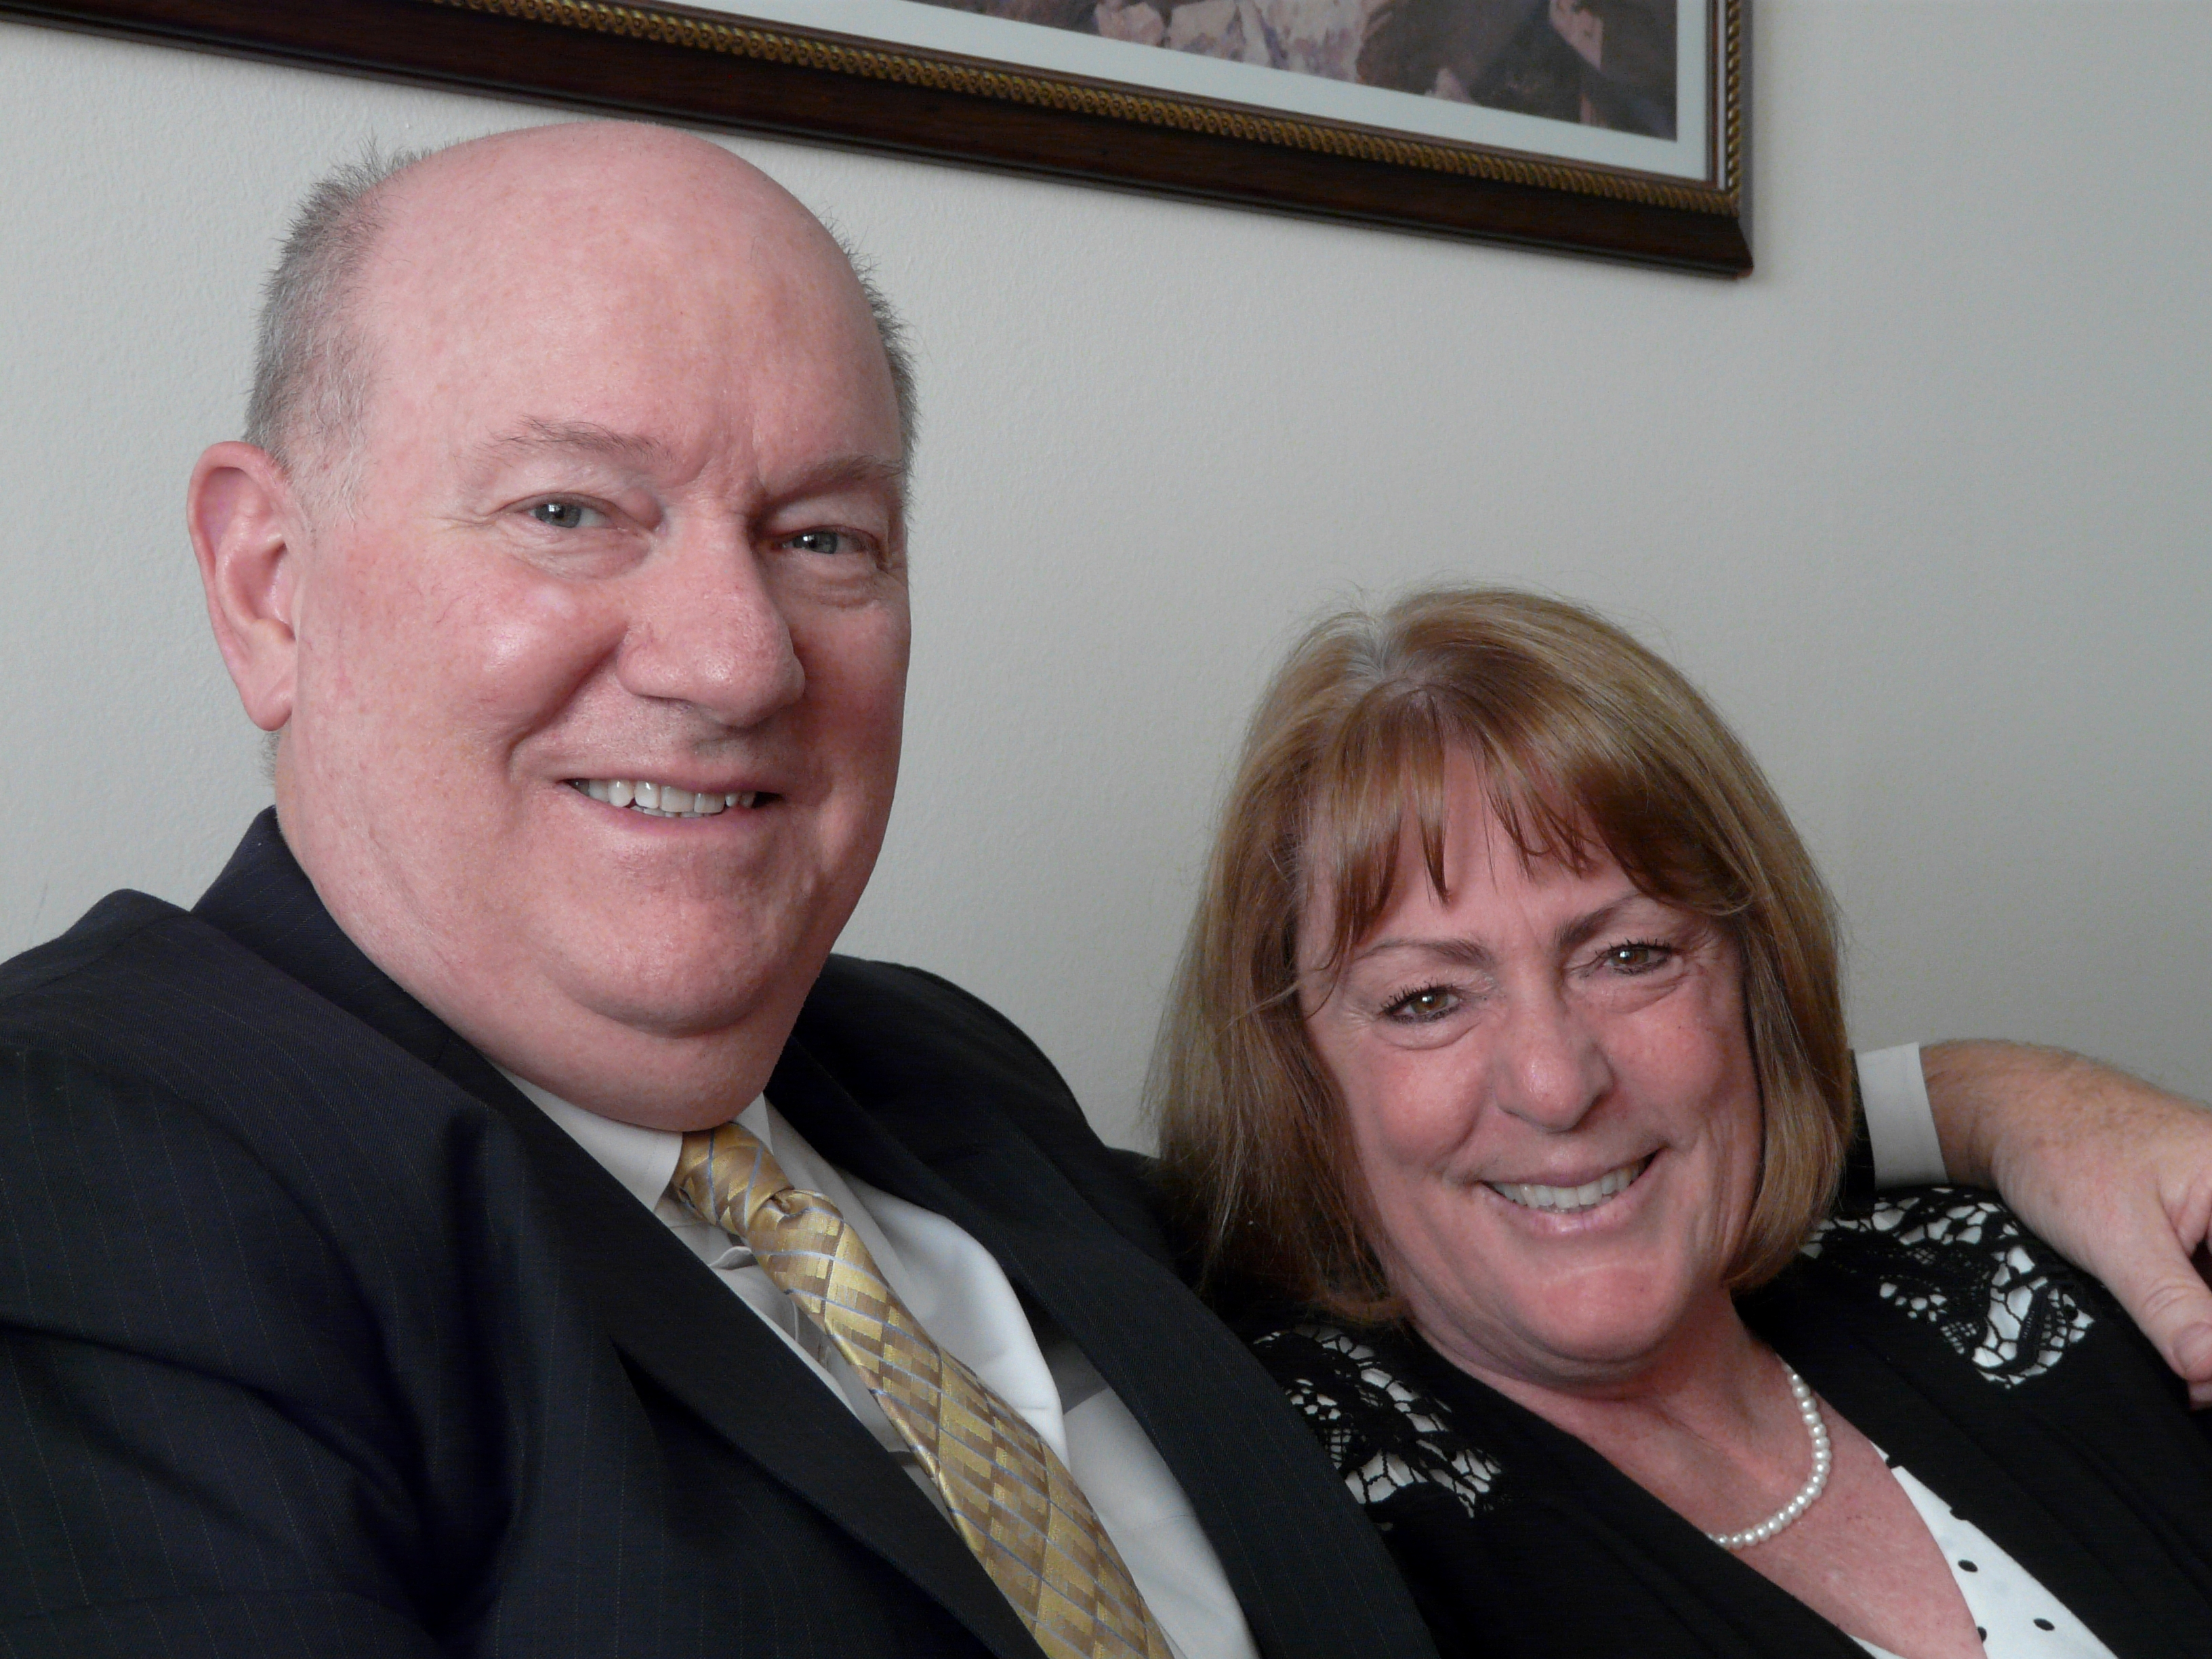 President Stephen Davis and Sister Mary Davis oversee missionary work in Bulgaria and other countries in the Bulgaria-Central Eurasian Mission, employing the help of technology to span distances.